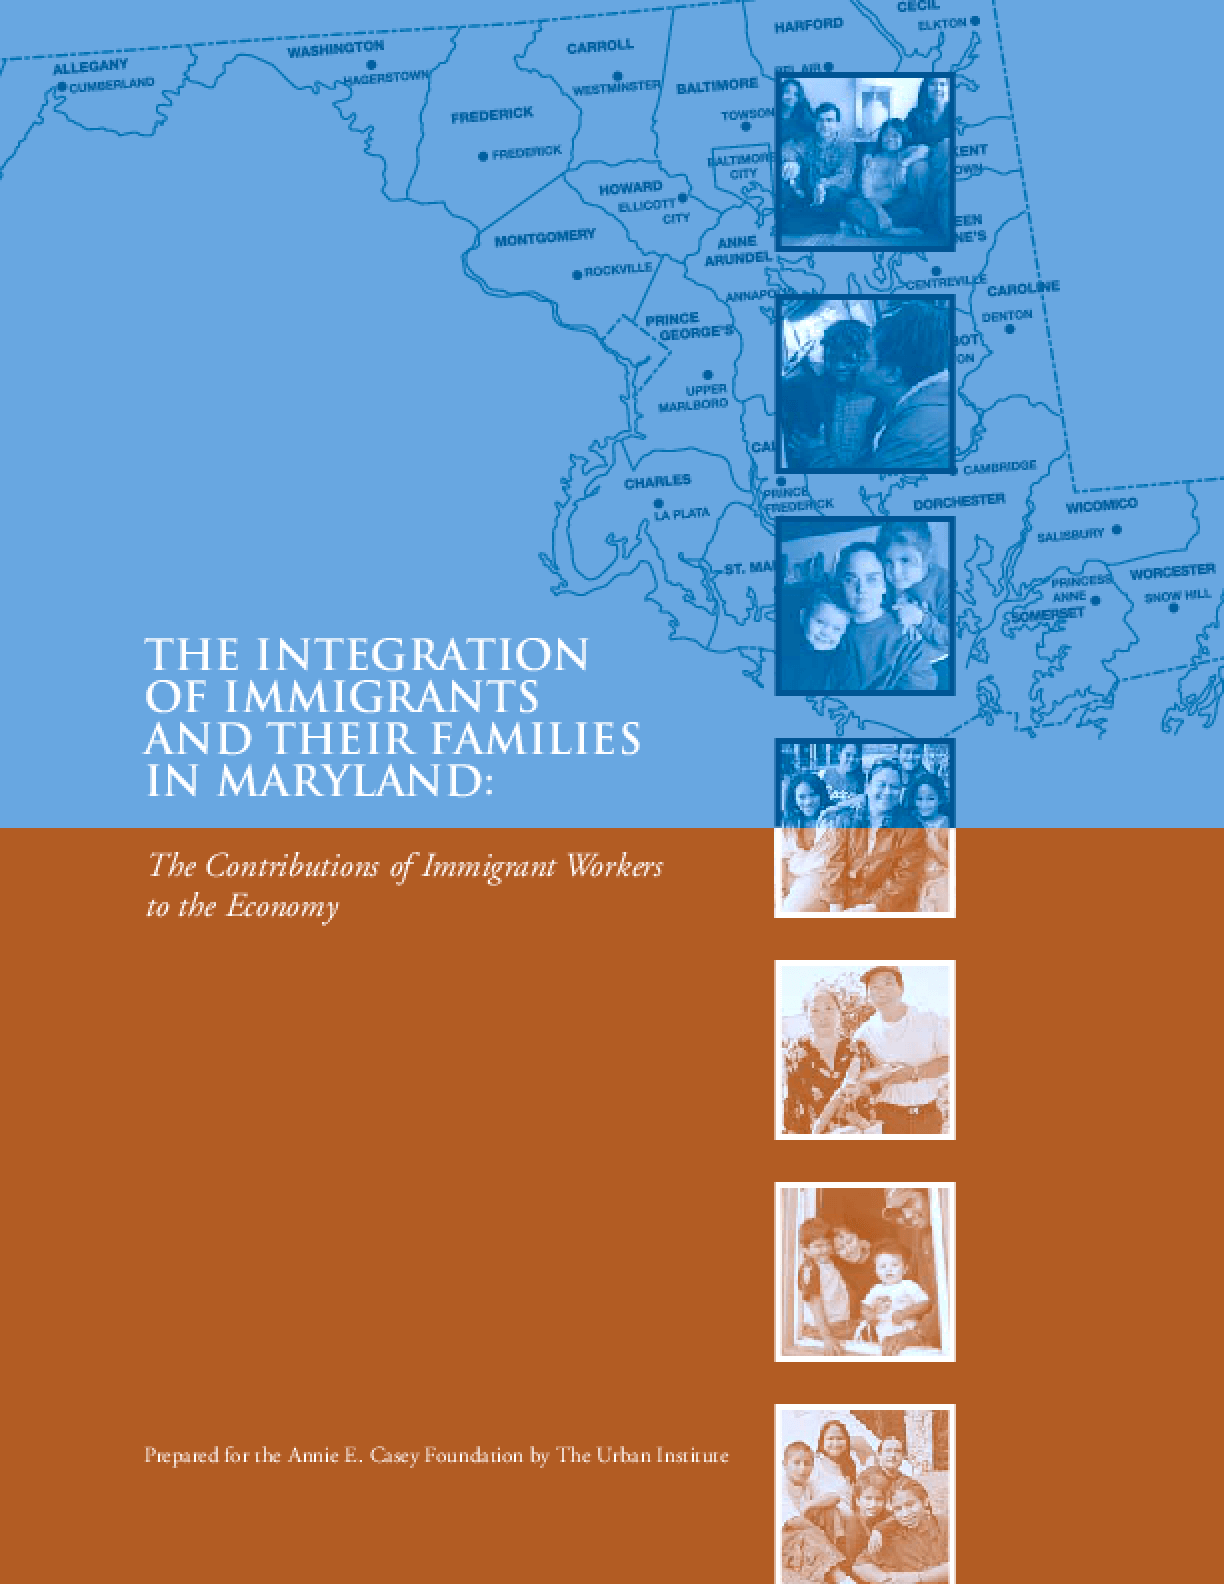 The Integration of Immigrants and Their Families in Maryland: The Contributions of Immigrant Workers to the Economy